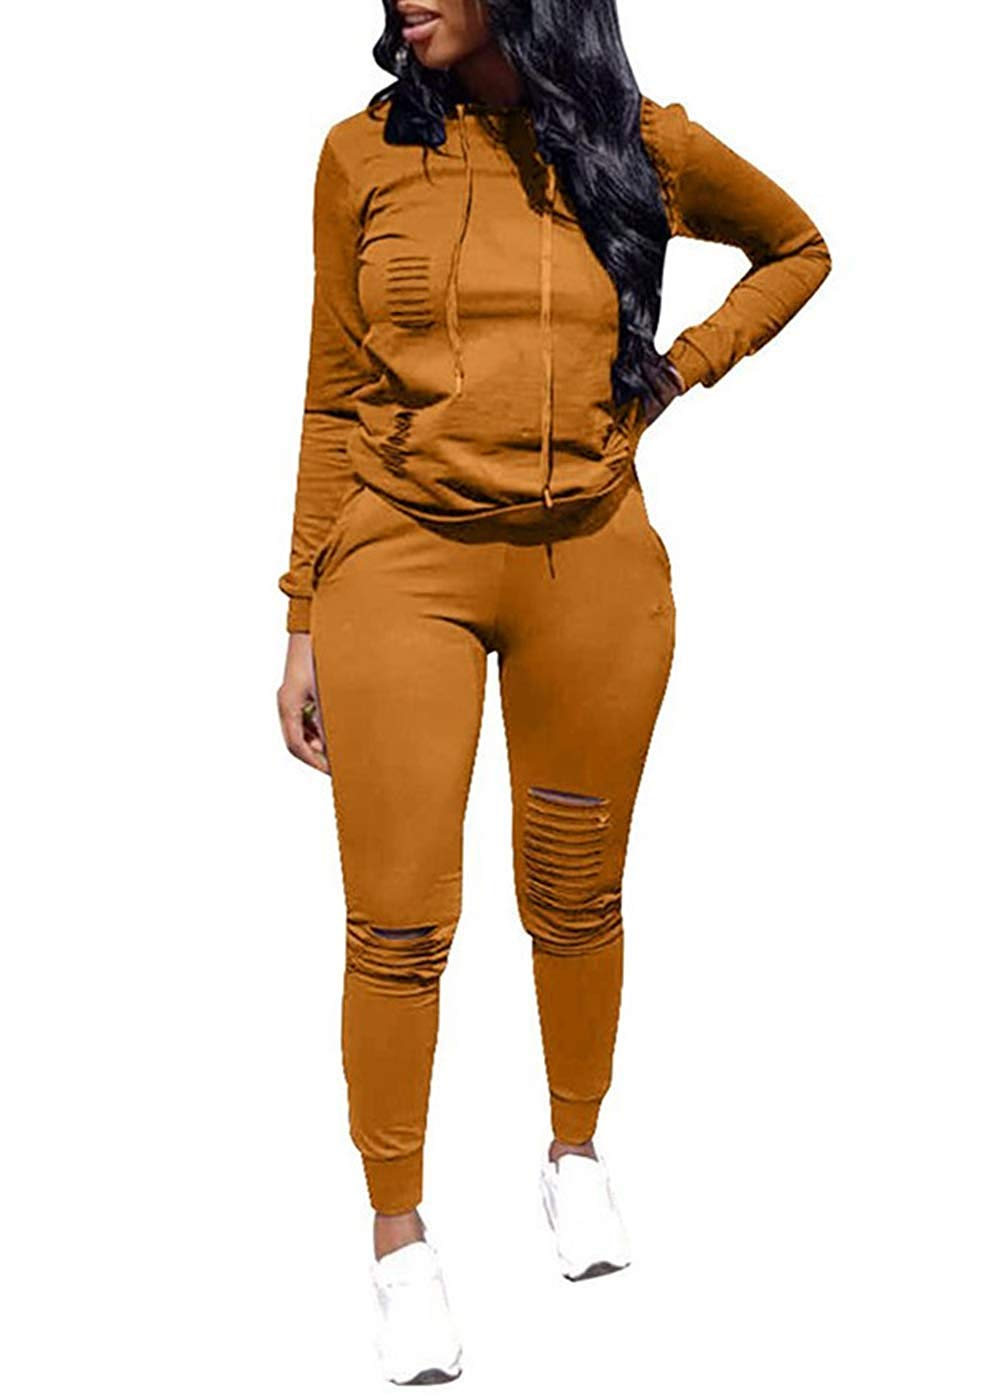 Women Casual Ripped Hole Pullover Hoodie Sweatpants 2 Piece Sport Jumpsuits Outfits Set (Yellow, XL)